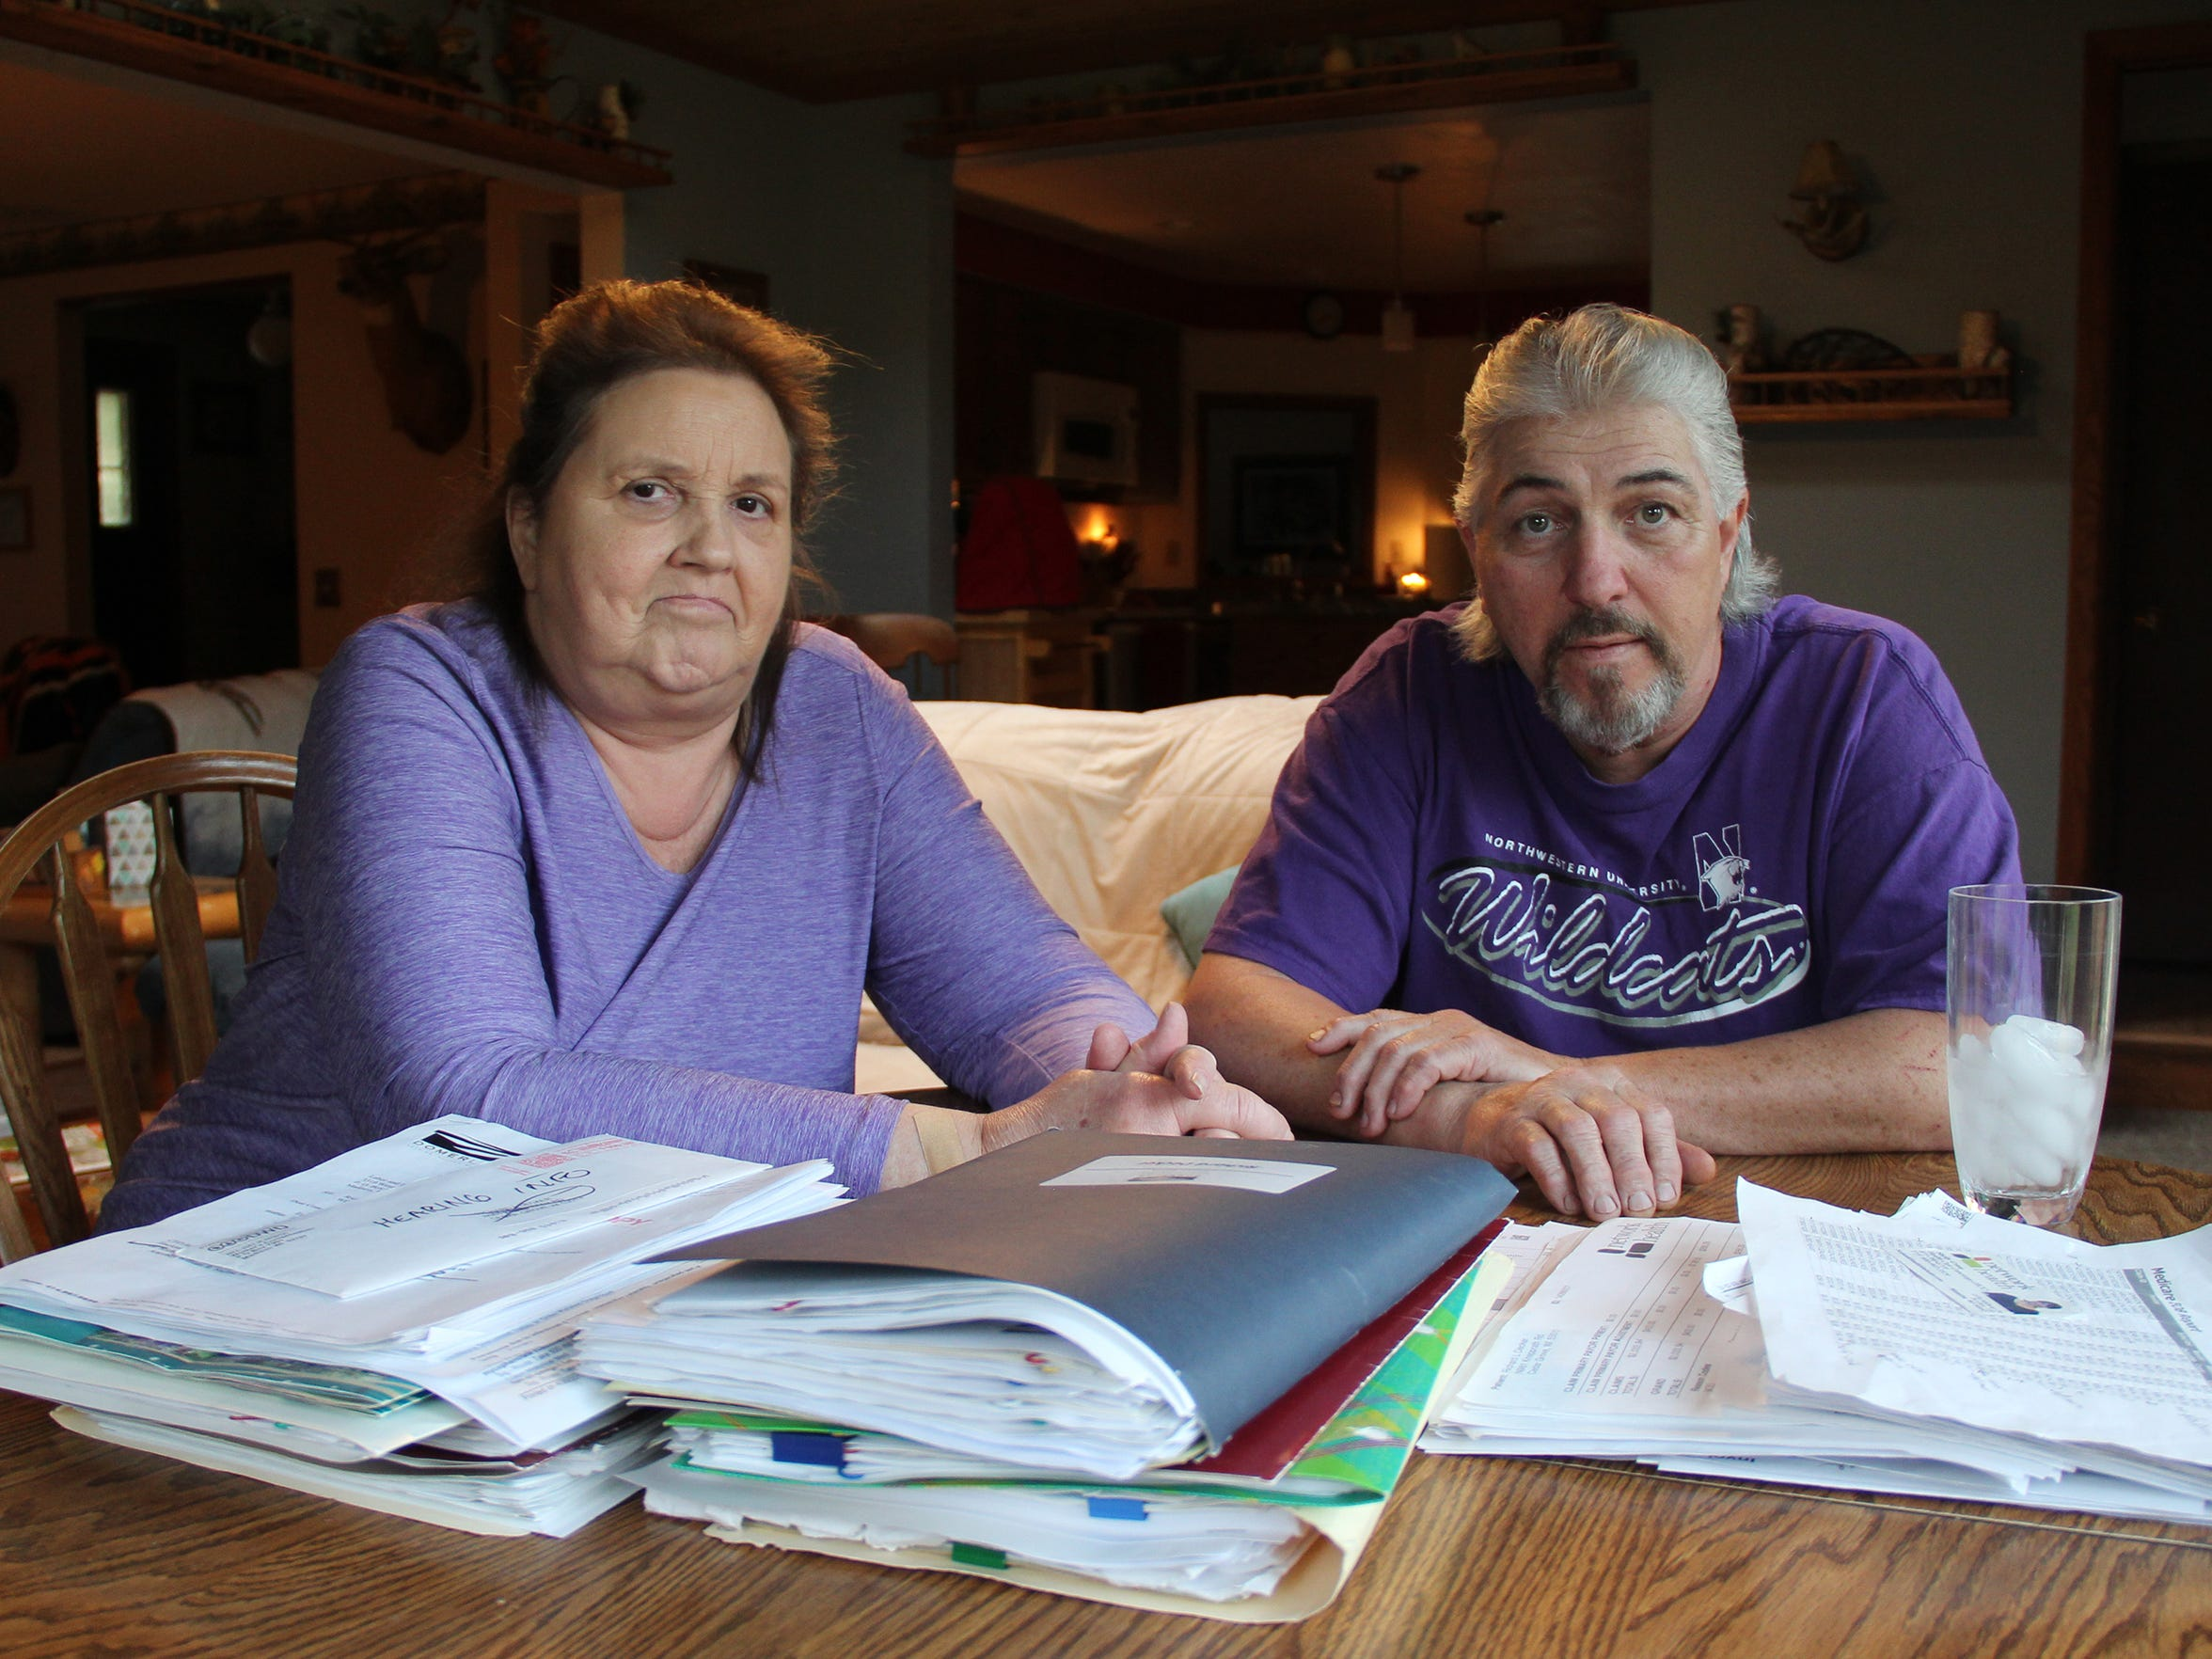 Richard Decker worked for more than 35 years for Kohler Co. before a brain injury sustained at work in 2010 forced him to stop working. Decker, seen here with his wife, Cathy, has problems with short-term memory and severe pain. Kohler has refused to provide him with long-term support under worker's compensation for the injury, and a state commission sided with the company.